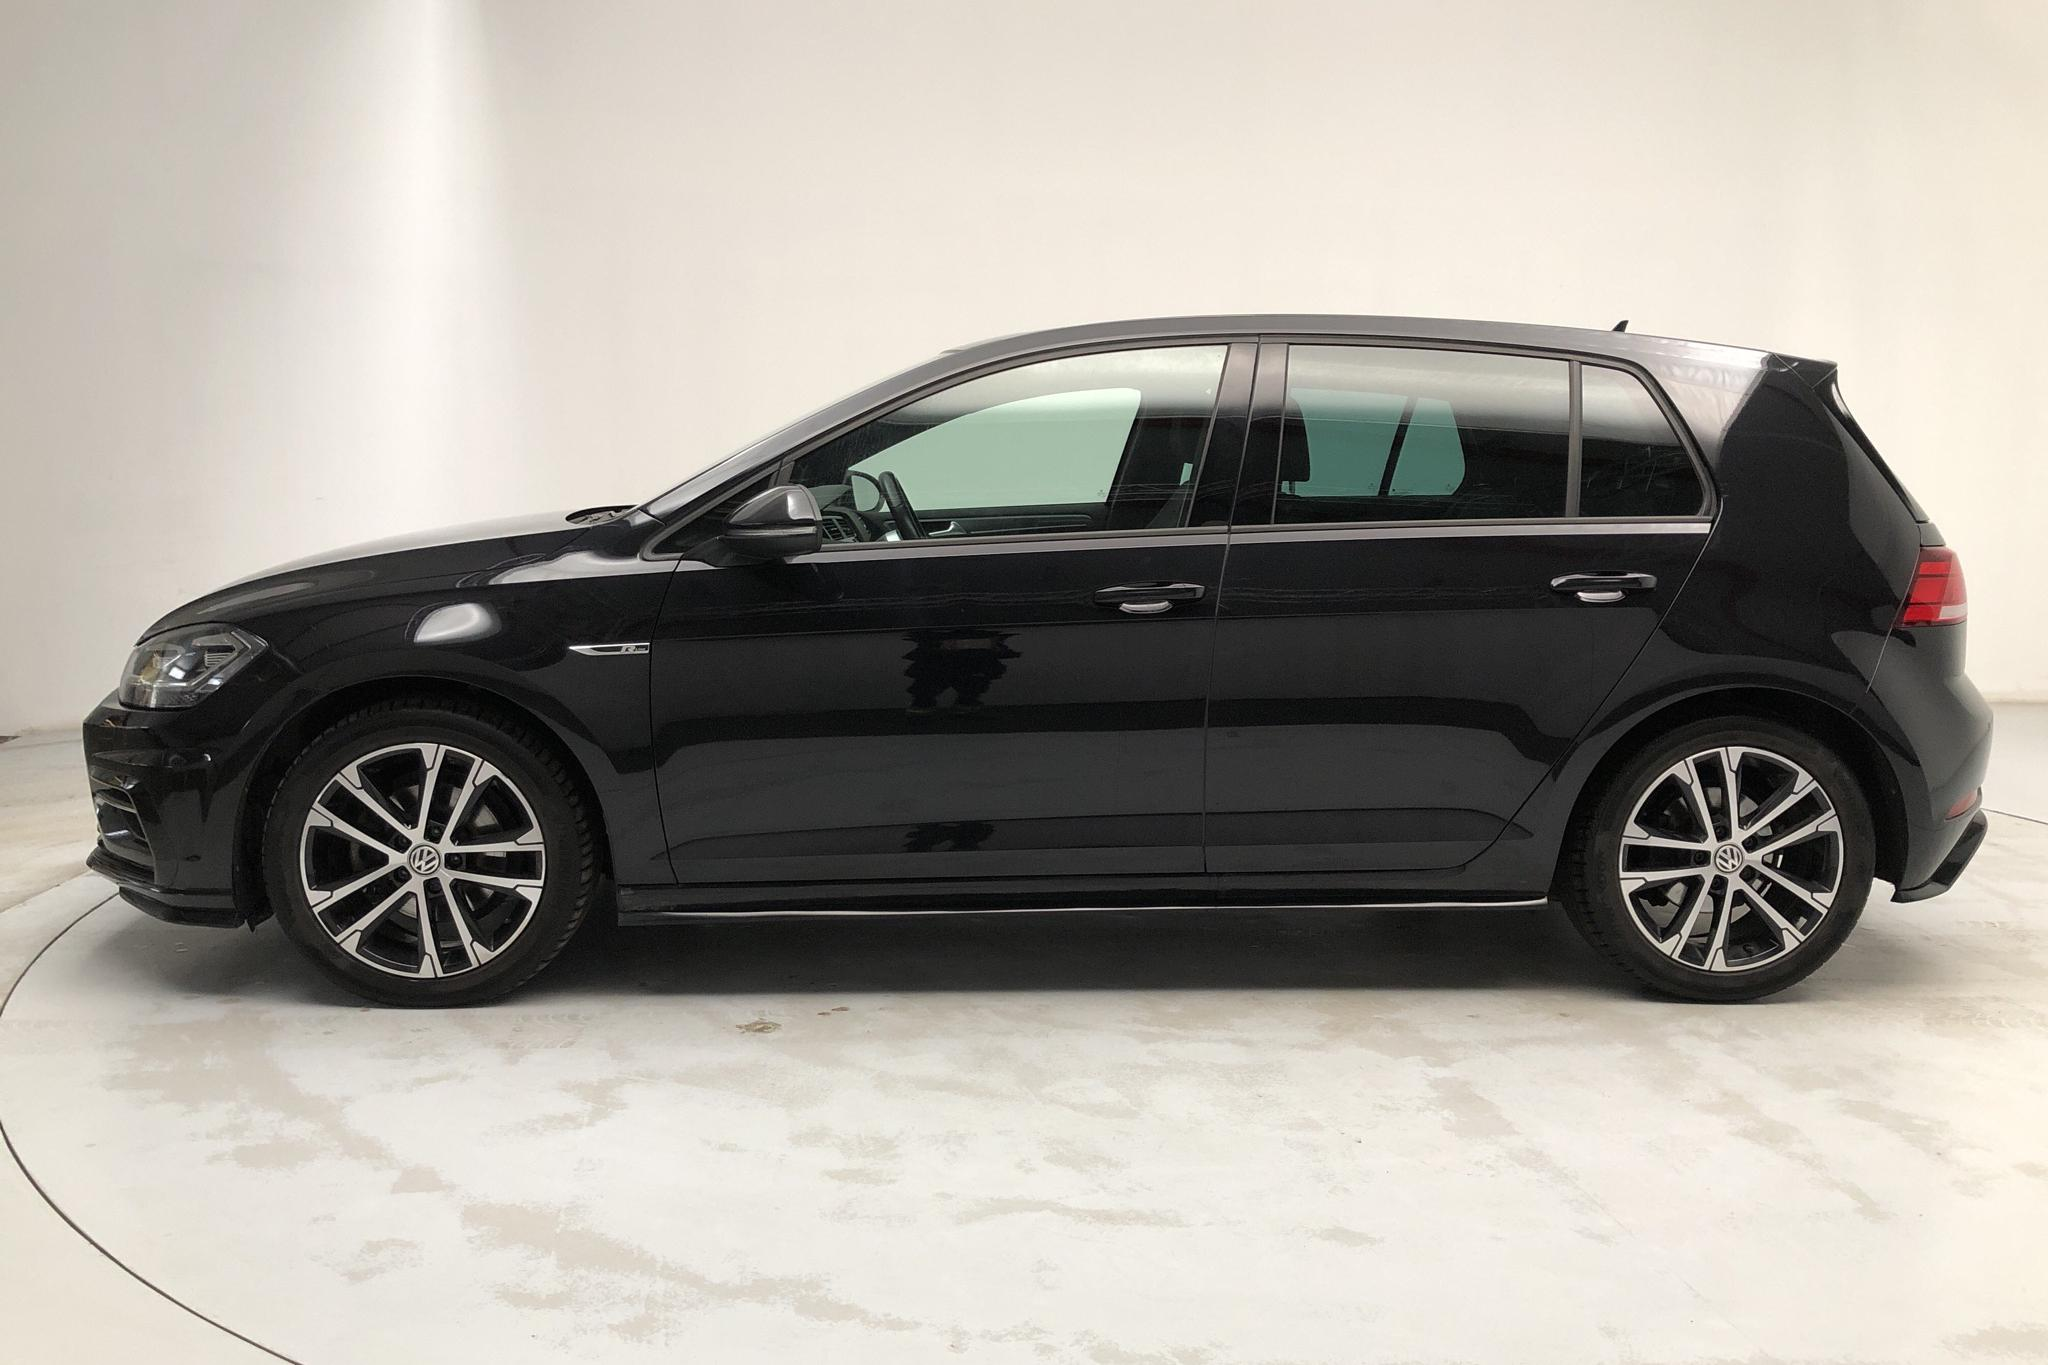 VW Golf VII 1.5 TSI 5dr (150hk) - 60 940 km - Automatic - black - 2019